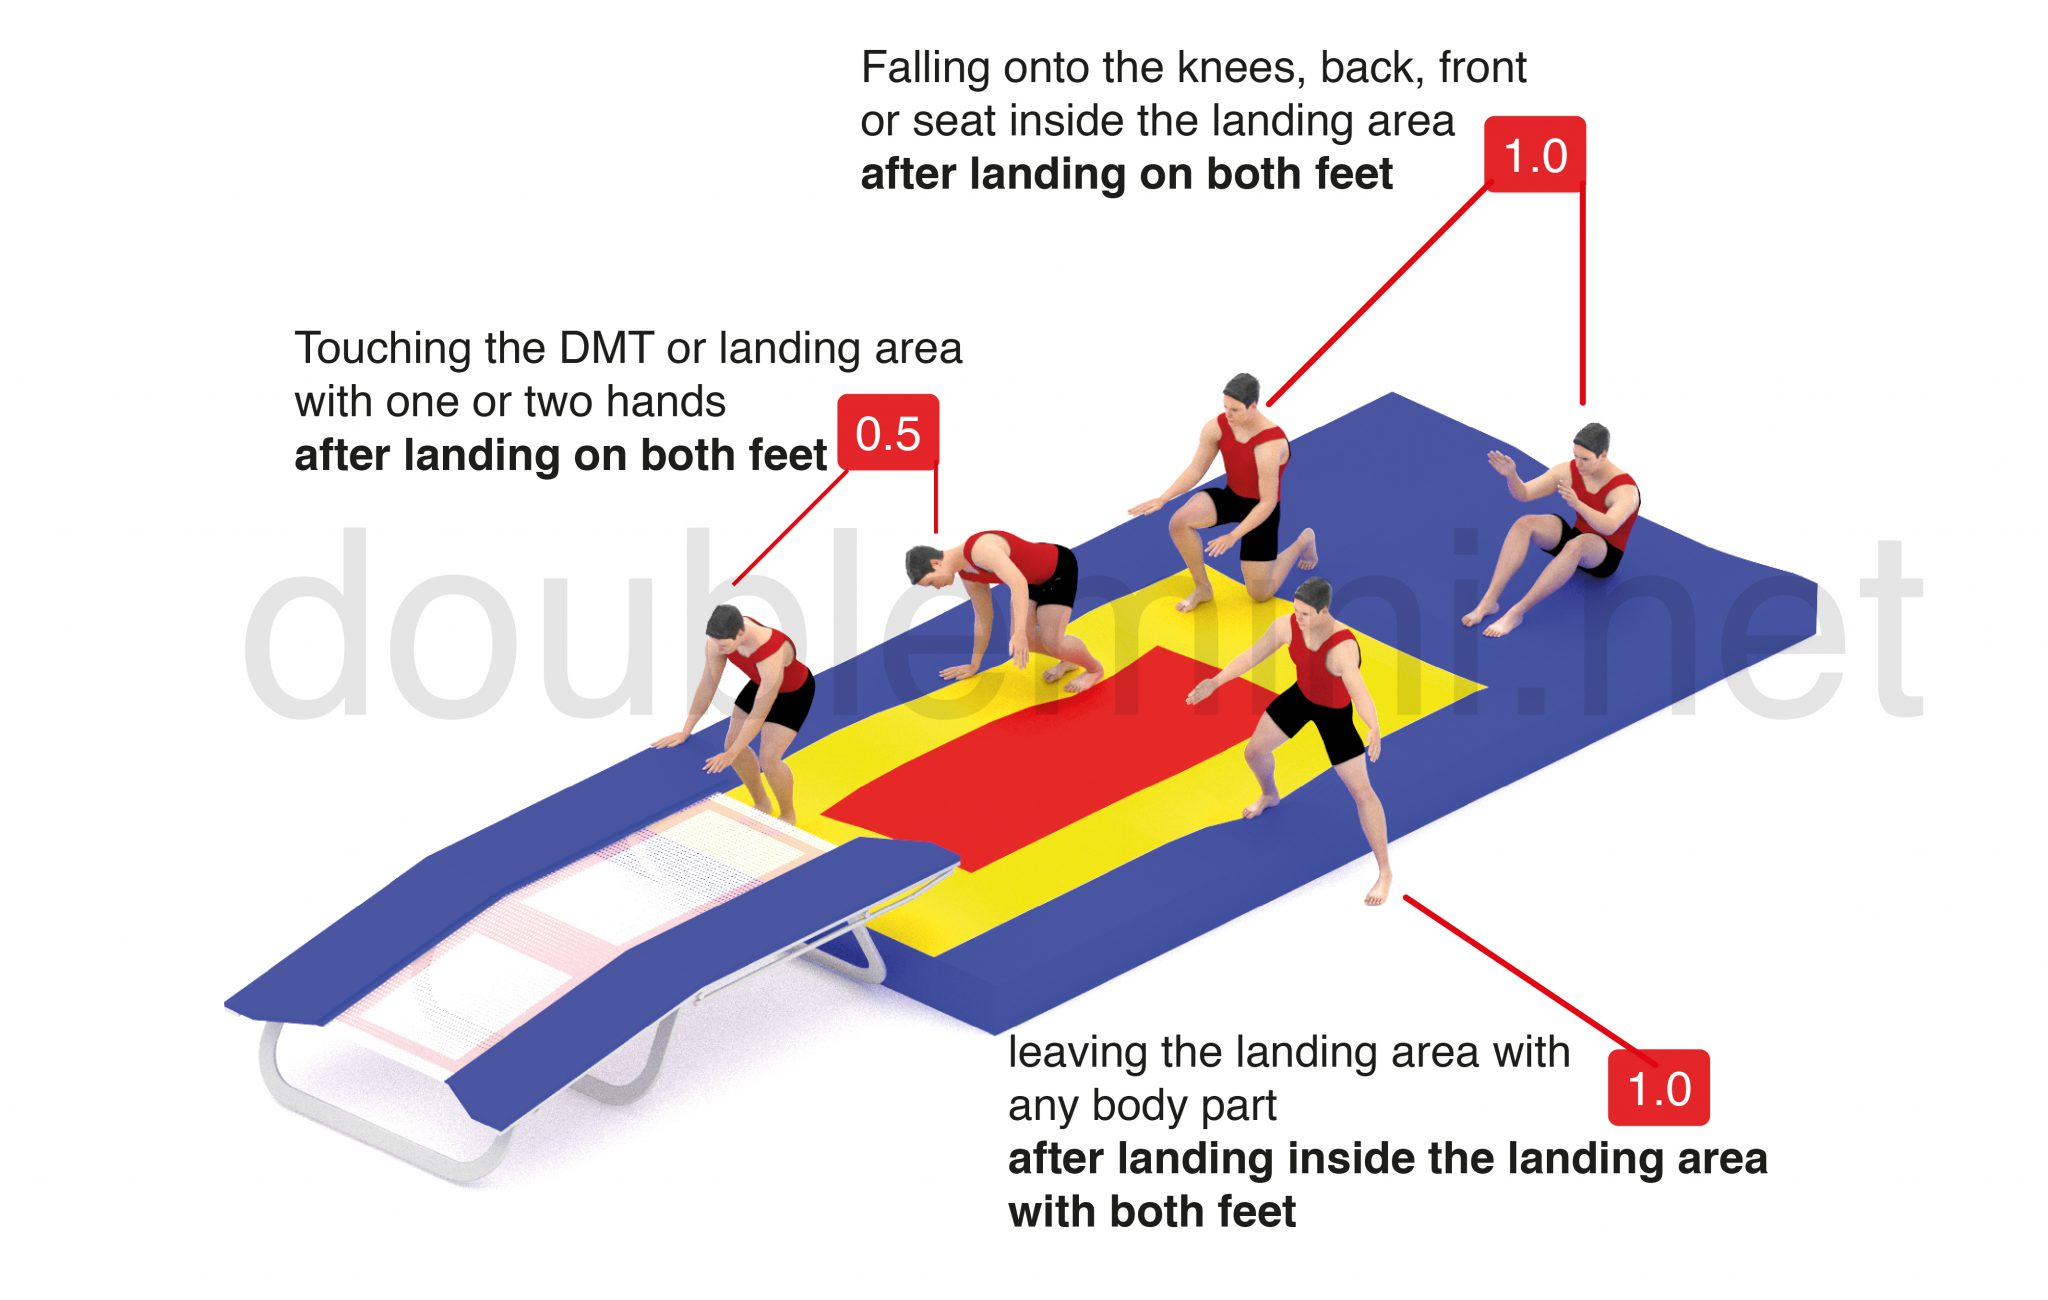 doublemini trampoline gymnastics deduction landing zone area